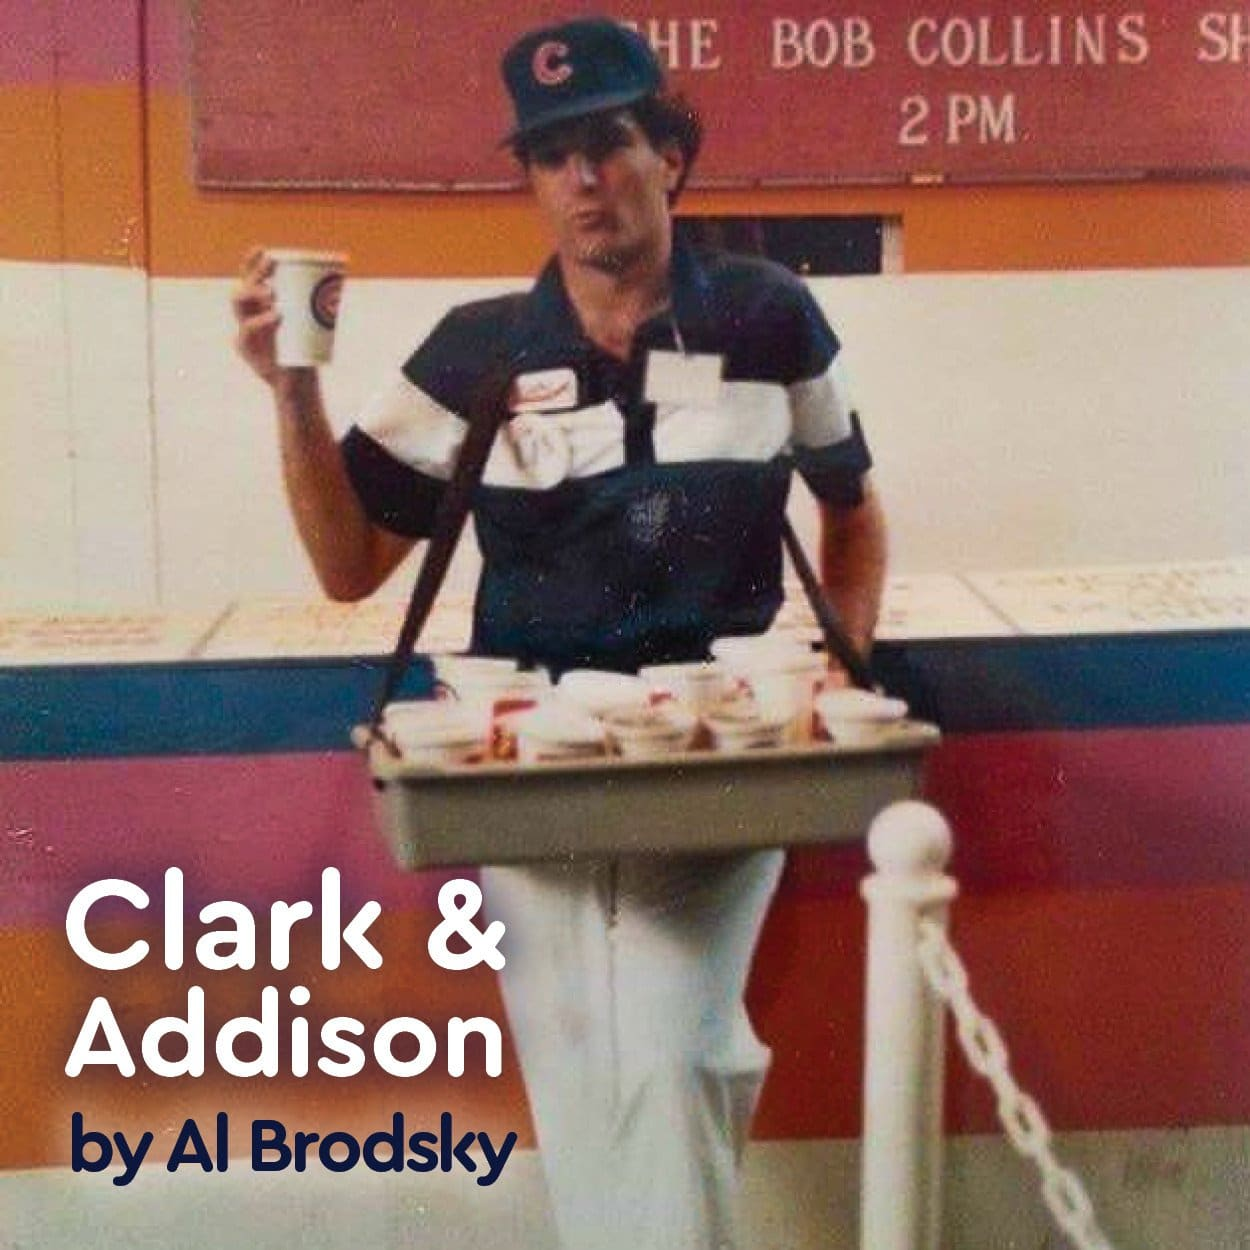 Al Brodsky at Clark & Addison